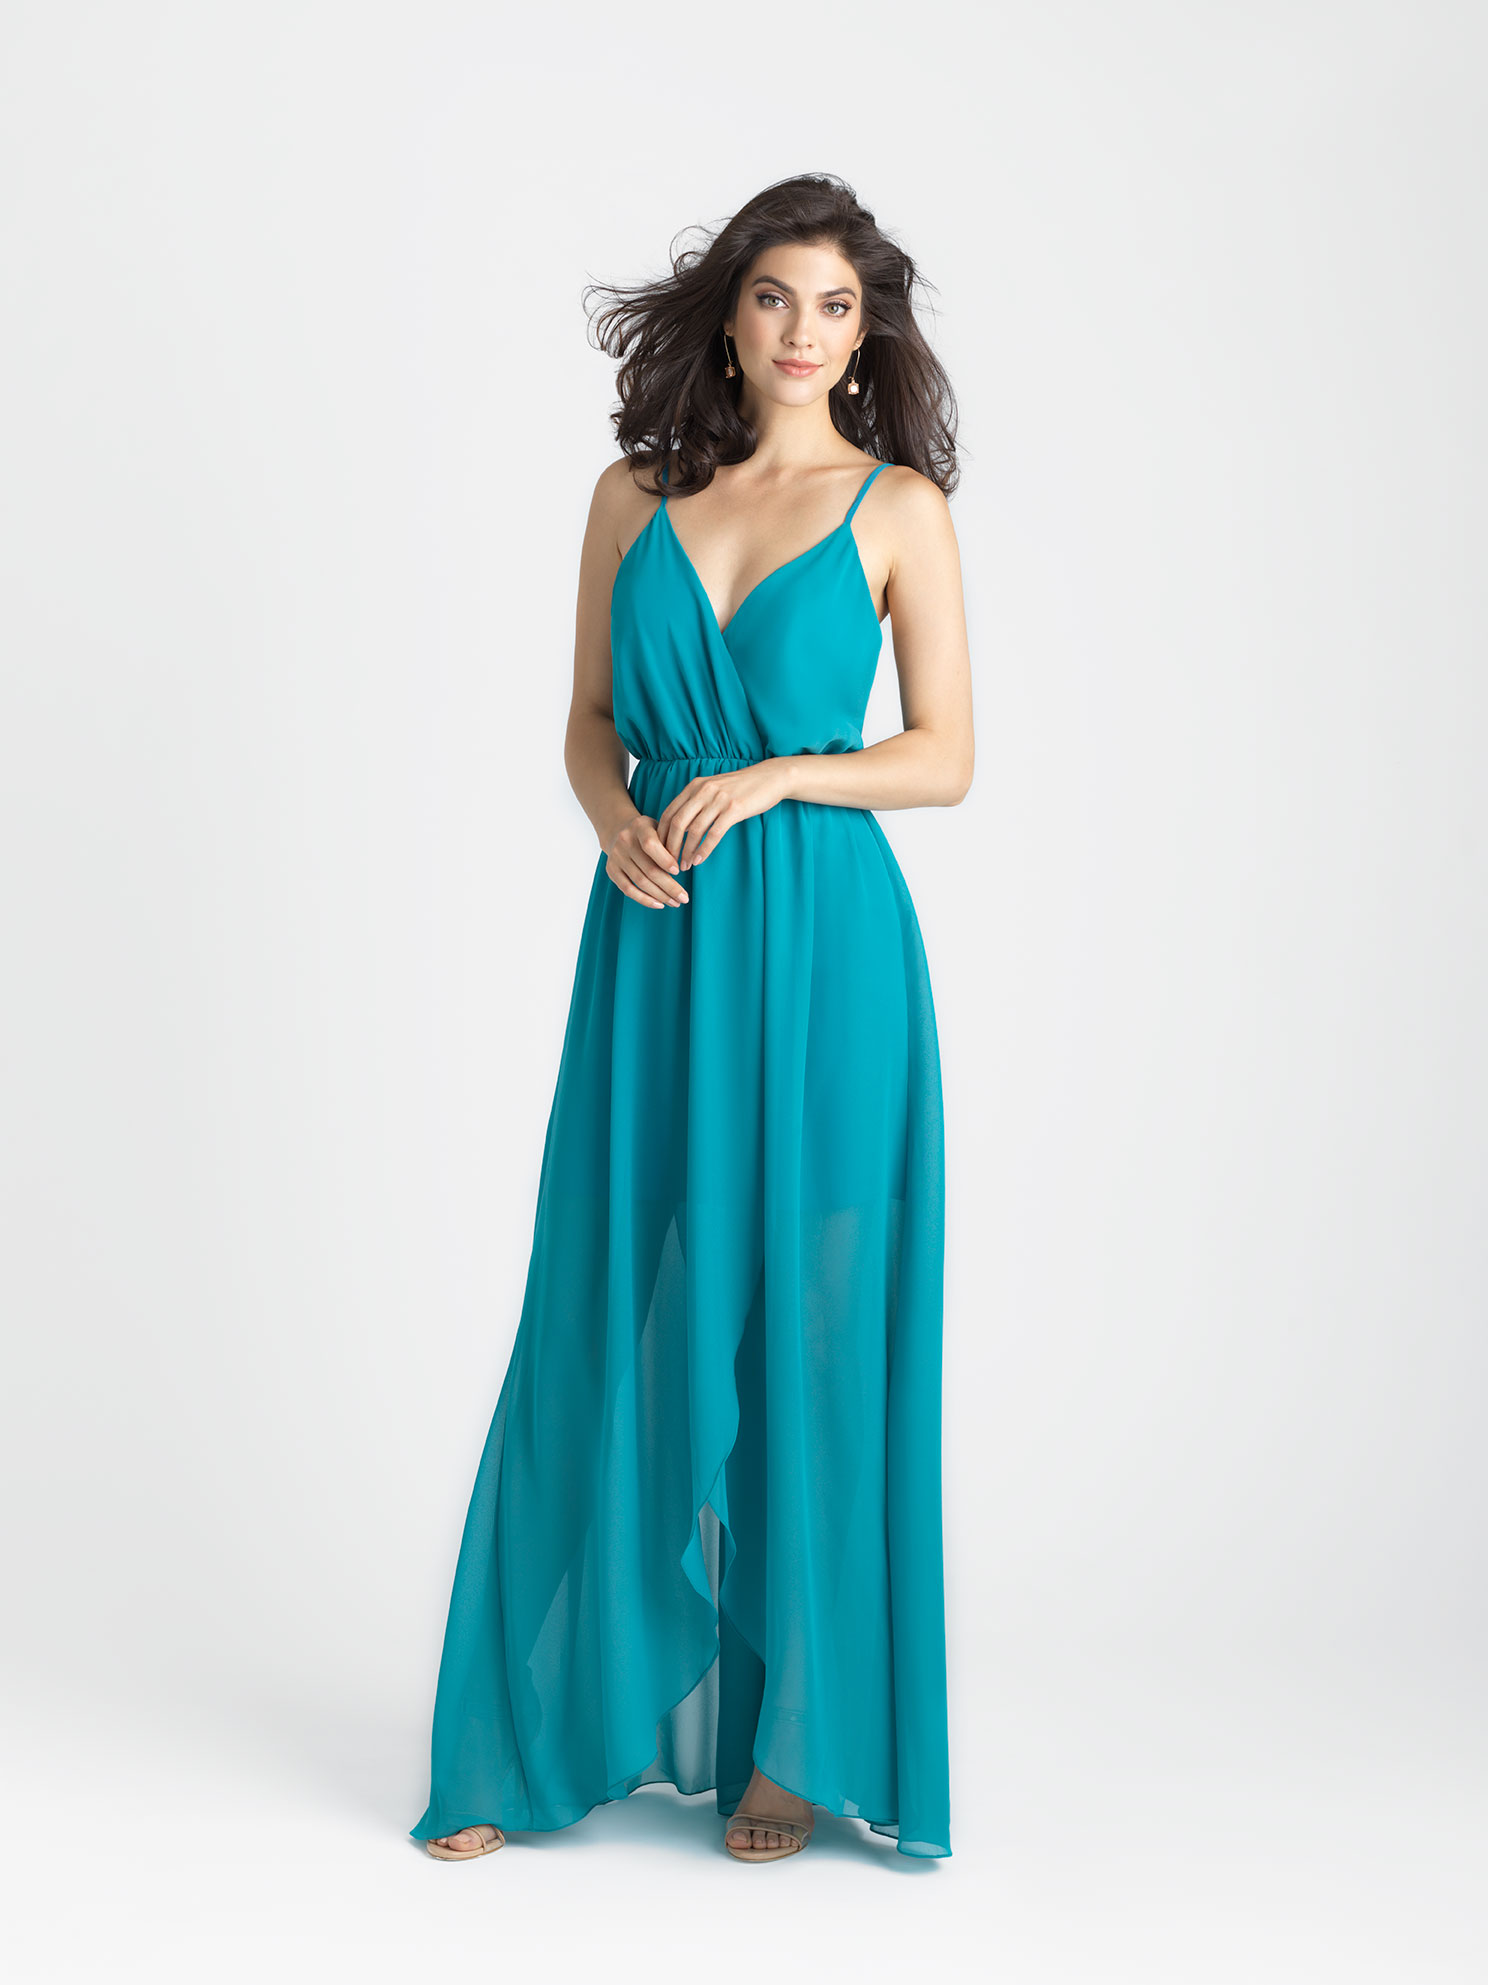 party dresses for wedding photo - 1